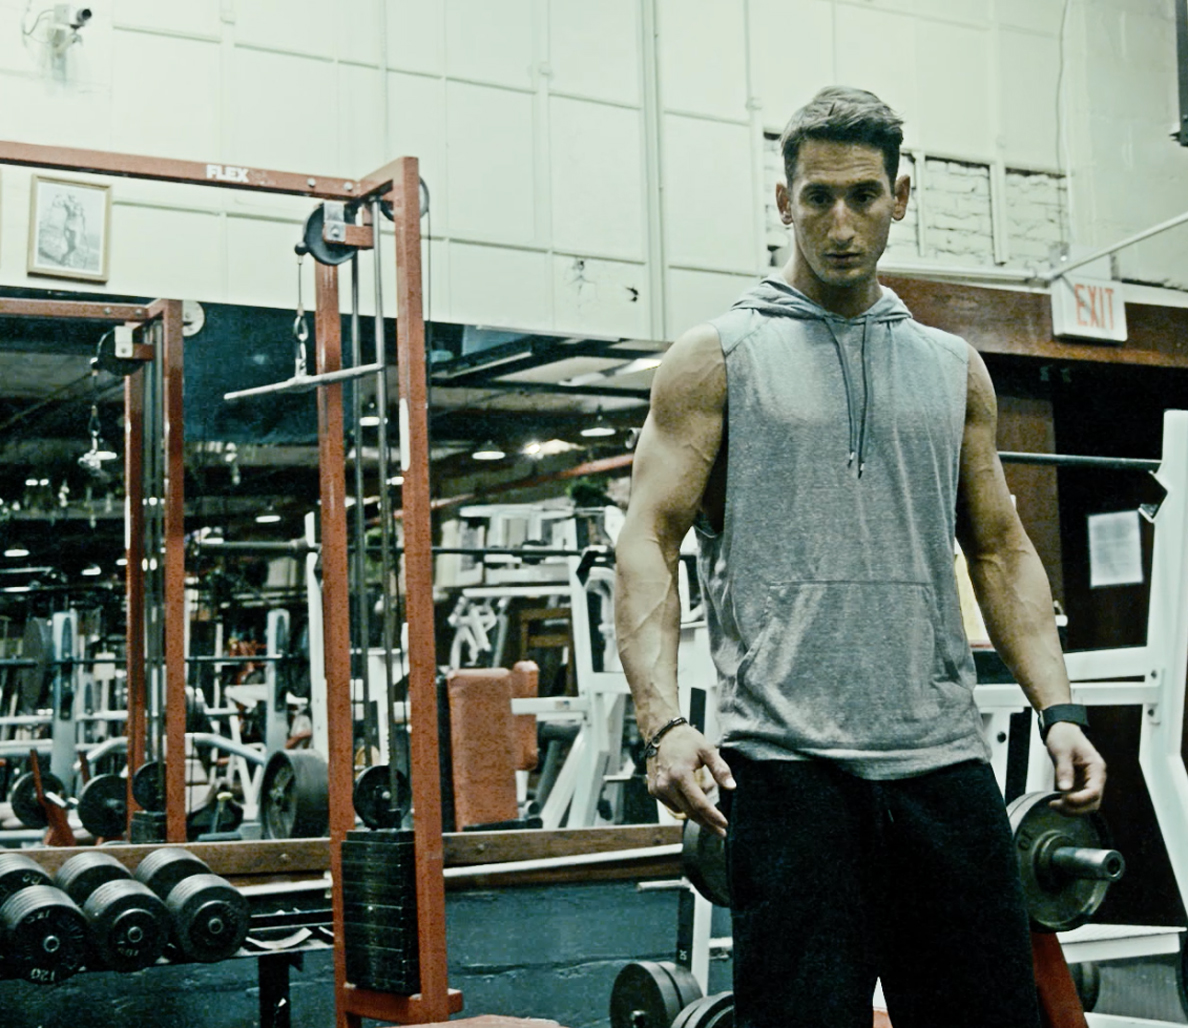 The 45-minute chest and triceps split routine